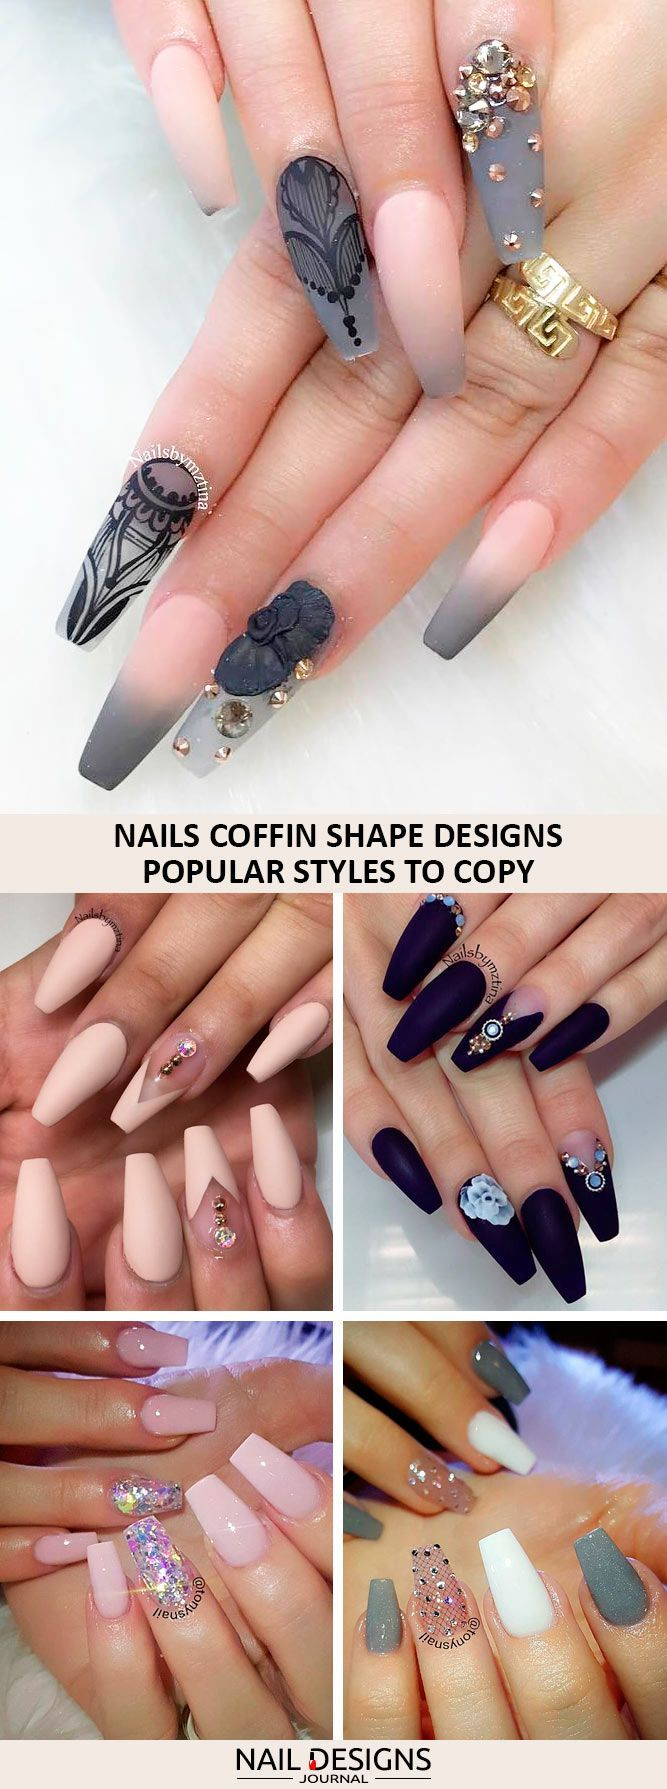 best 25+ coffin nail designs ideas on pinterest | long nail